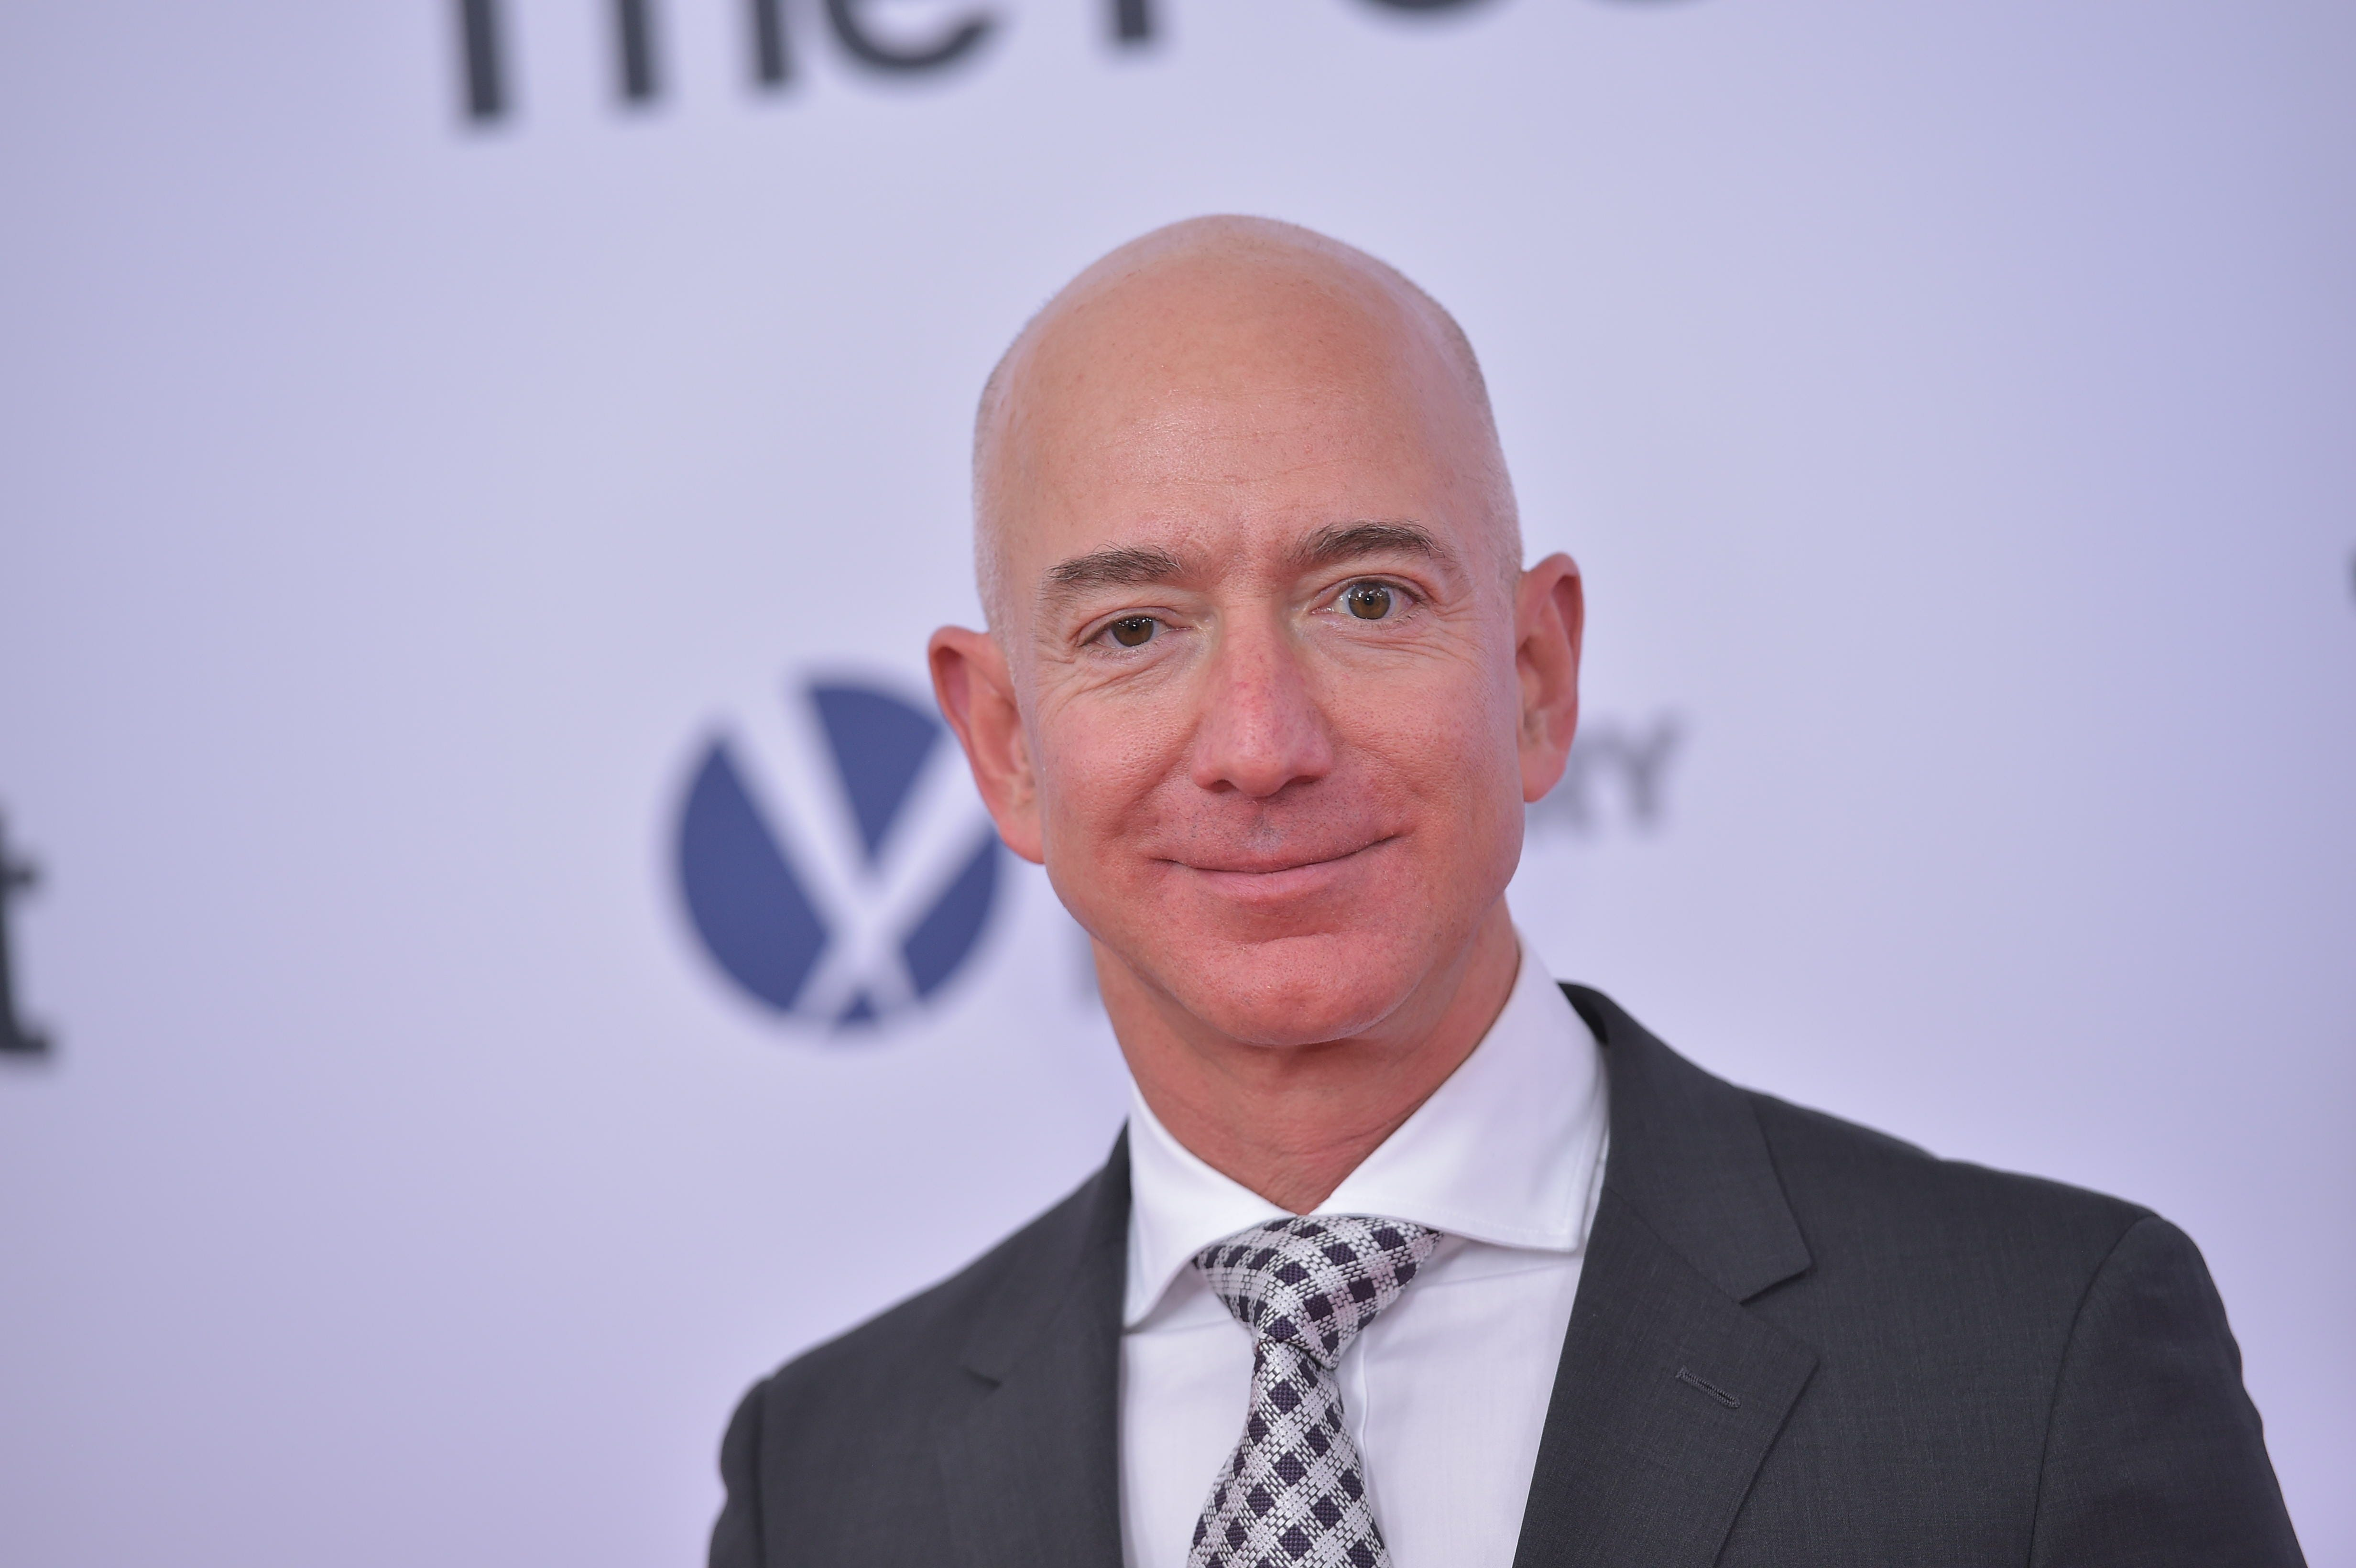 Amazon shares dive off report Trump wants to 'go after' company